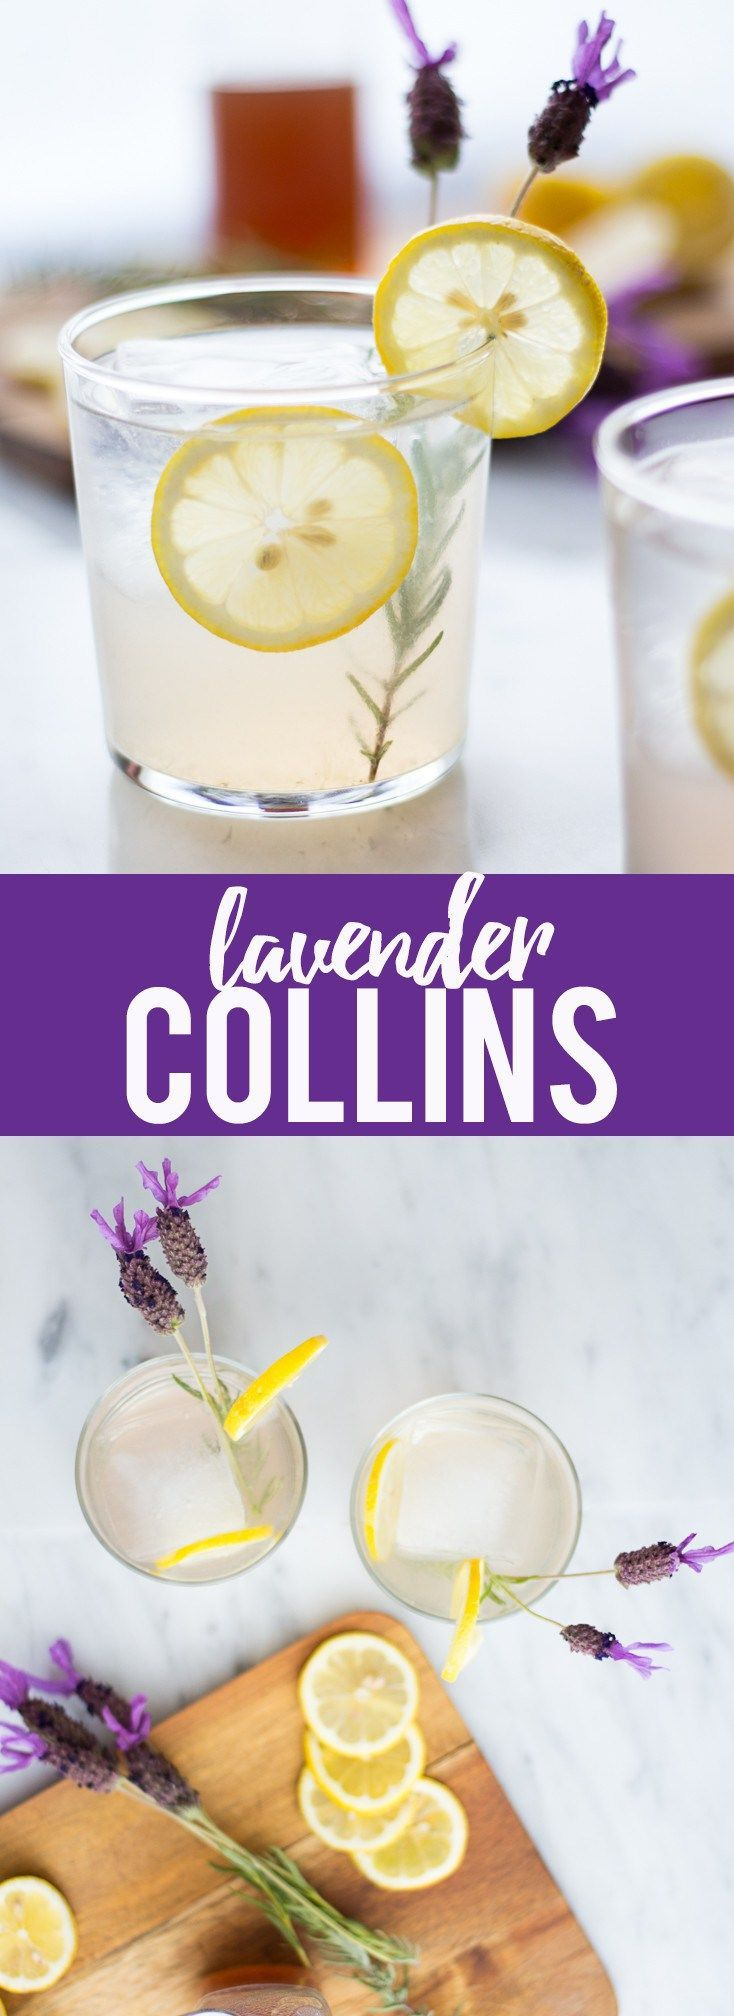 This refreshing Lavender Collins is a fresh twist on a Tom Collins cocktail, with homemade lavender syrup, gin, lemon juice and a splash of sparkling water.